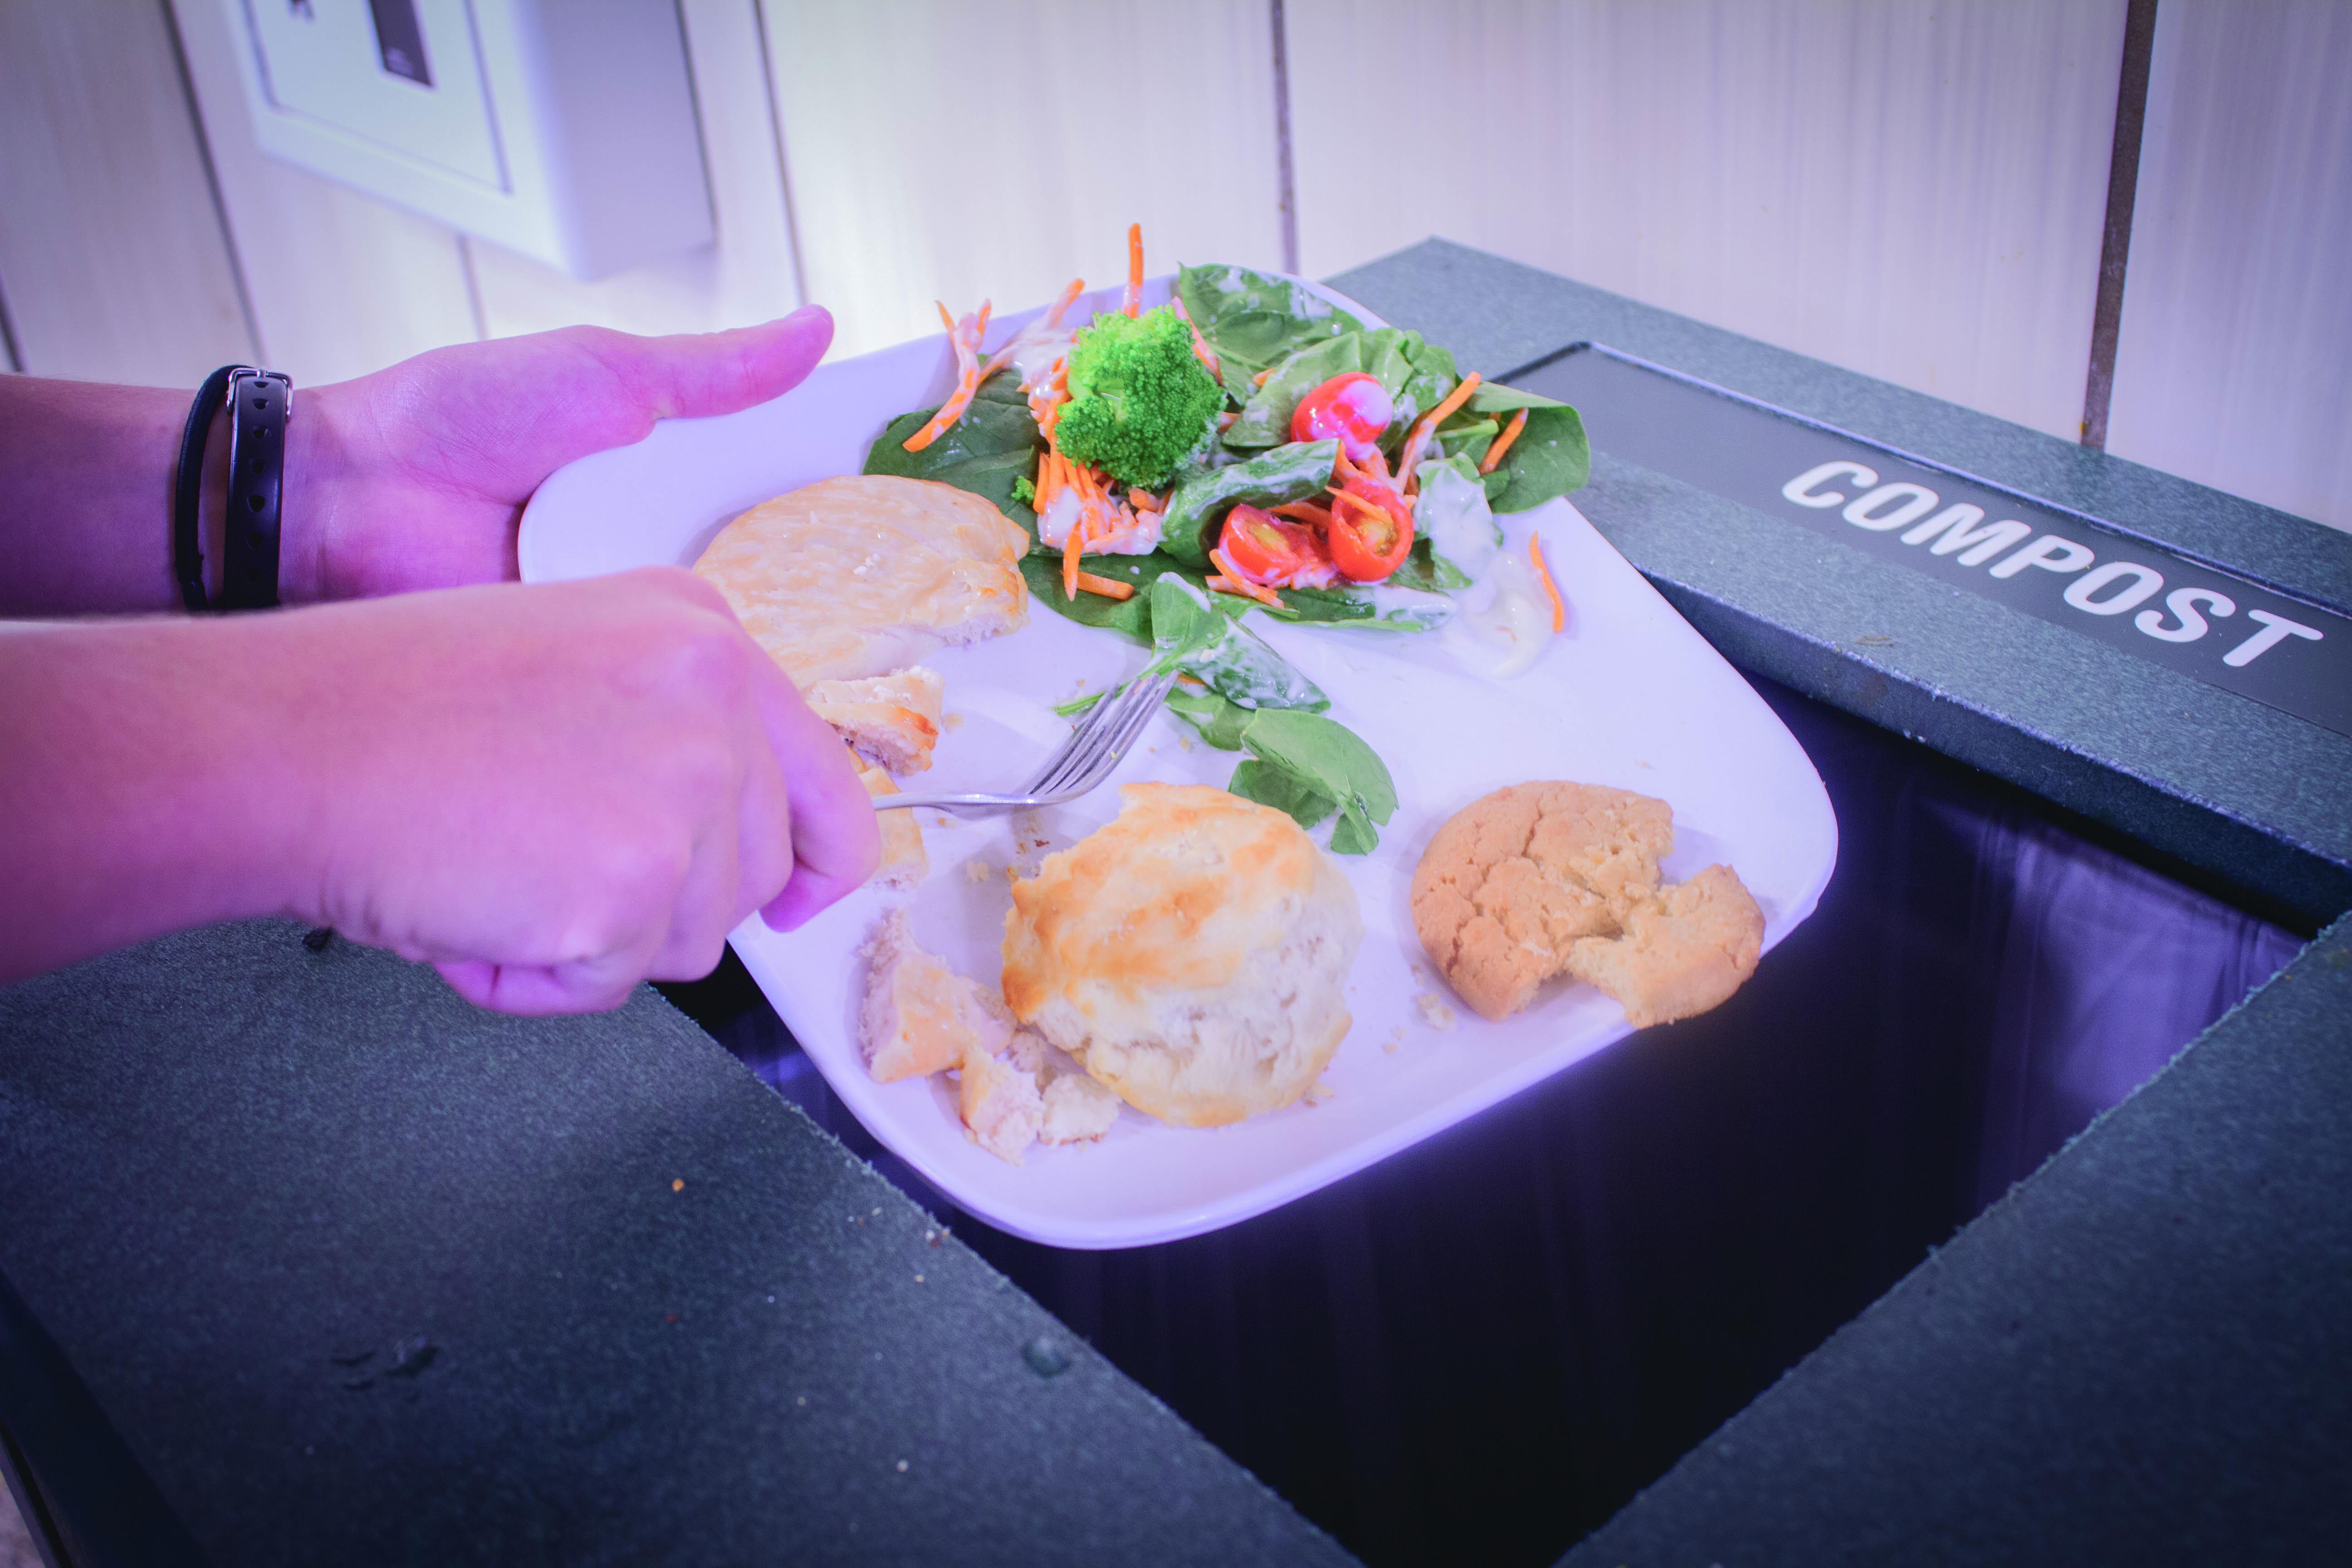 'Waste not Want not' at UTD Dining Services